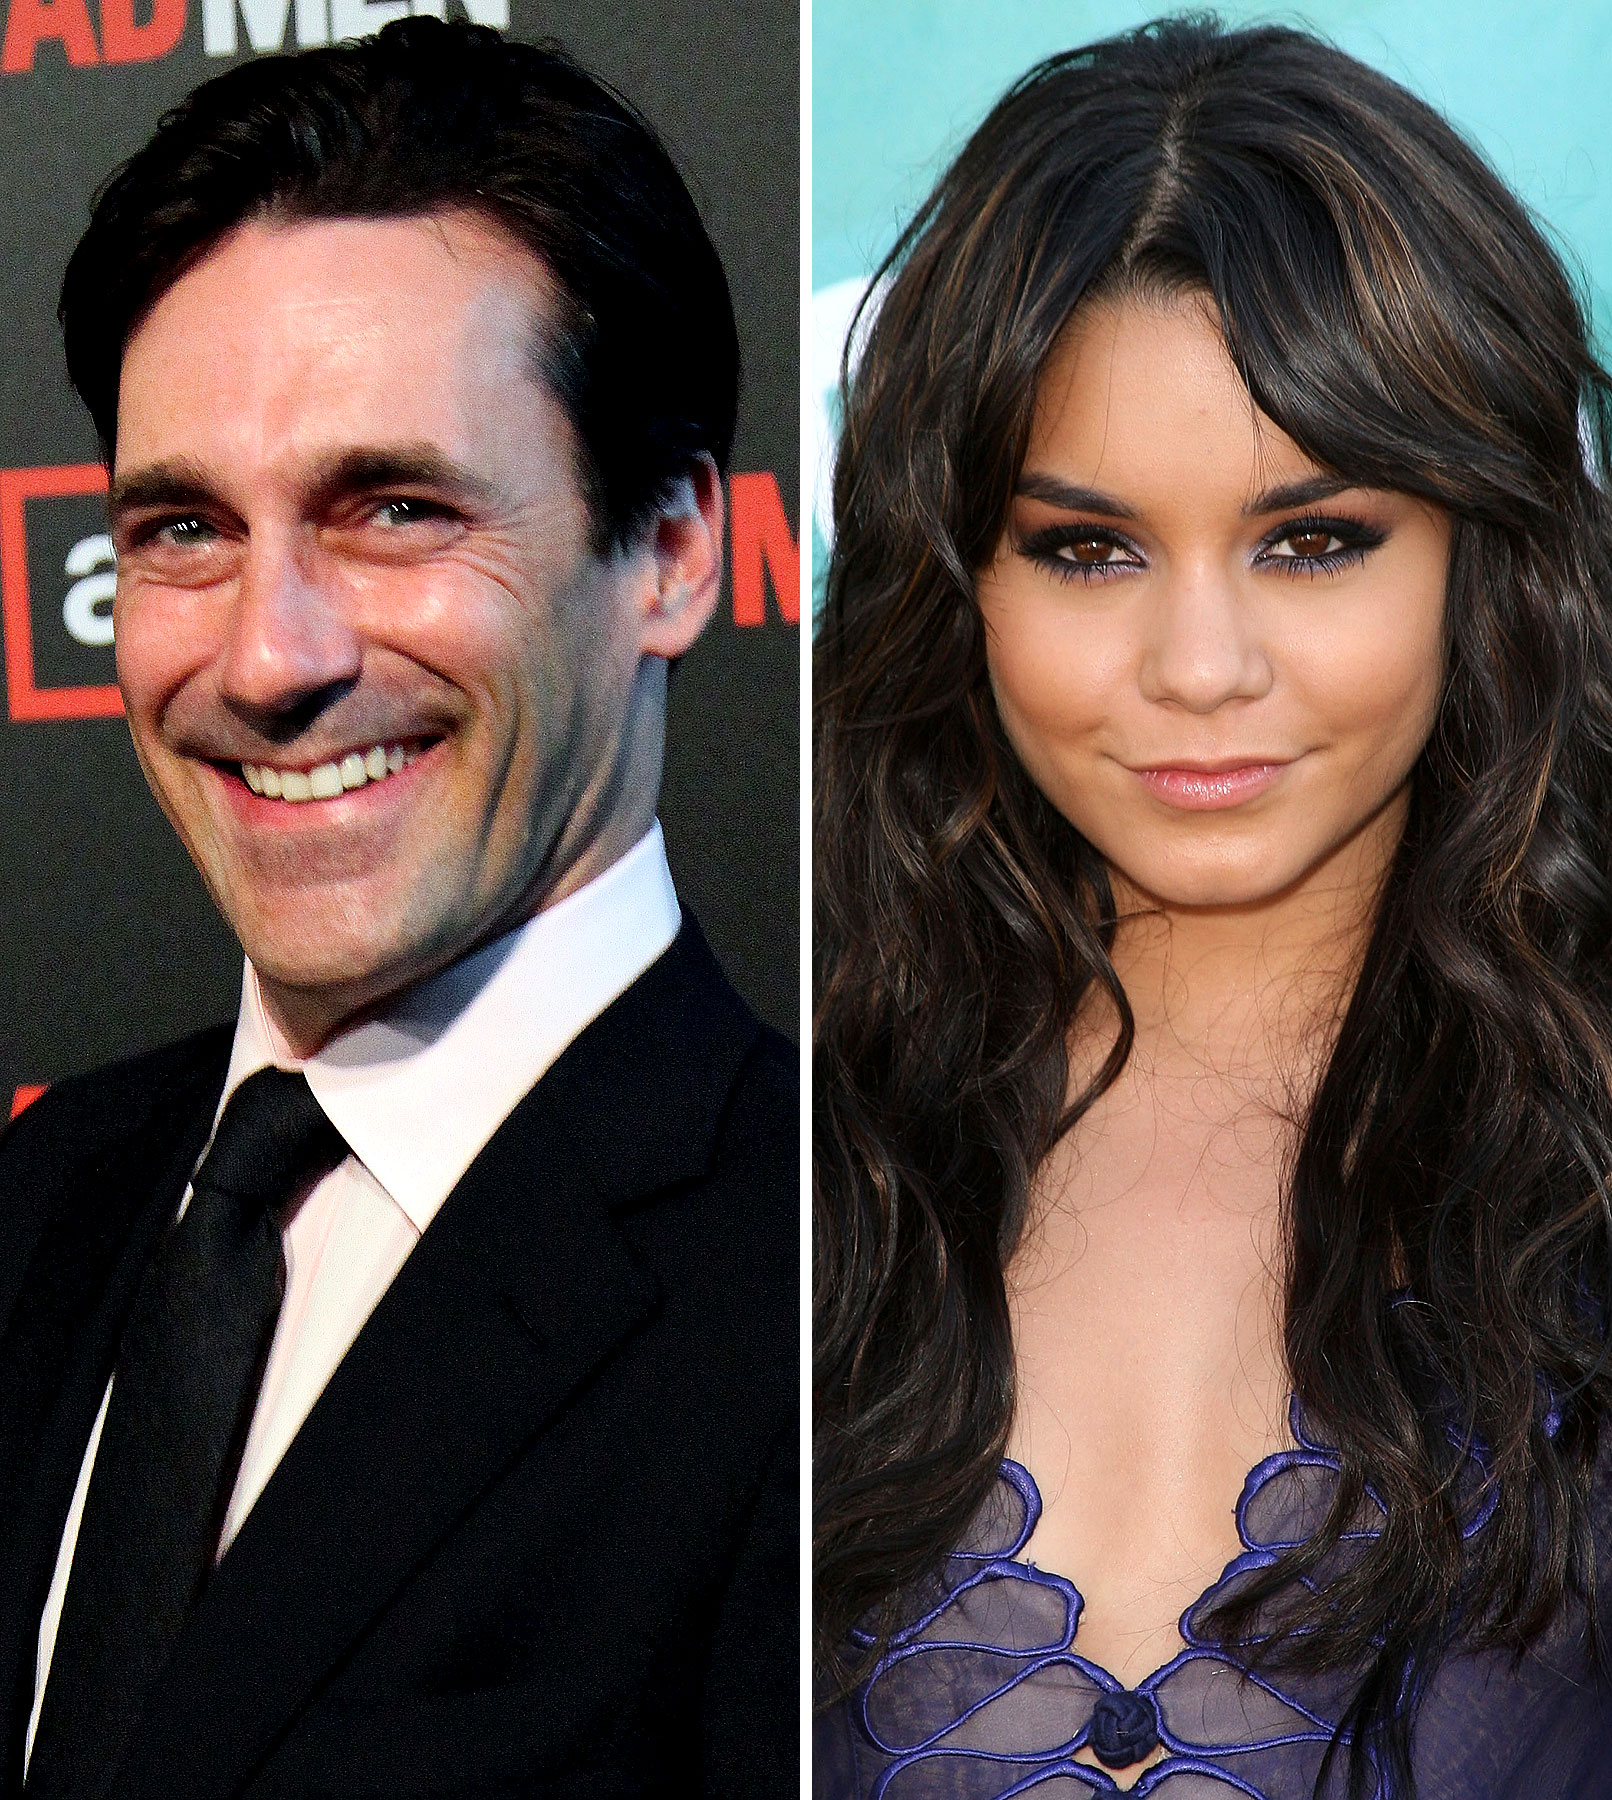 Jon Hamm Signs On For 'Sucker Punch' With Vanessa Hudgens